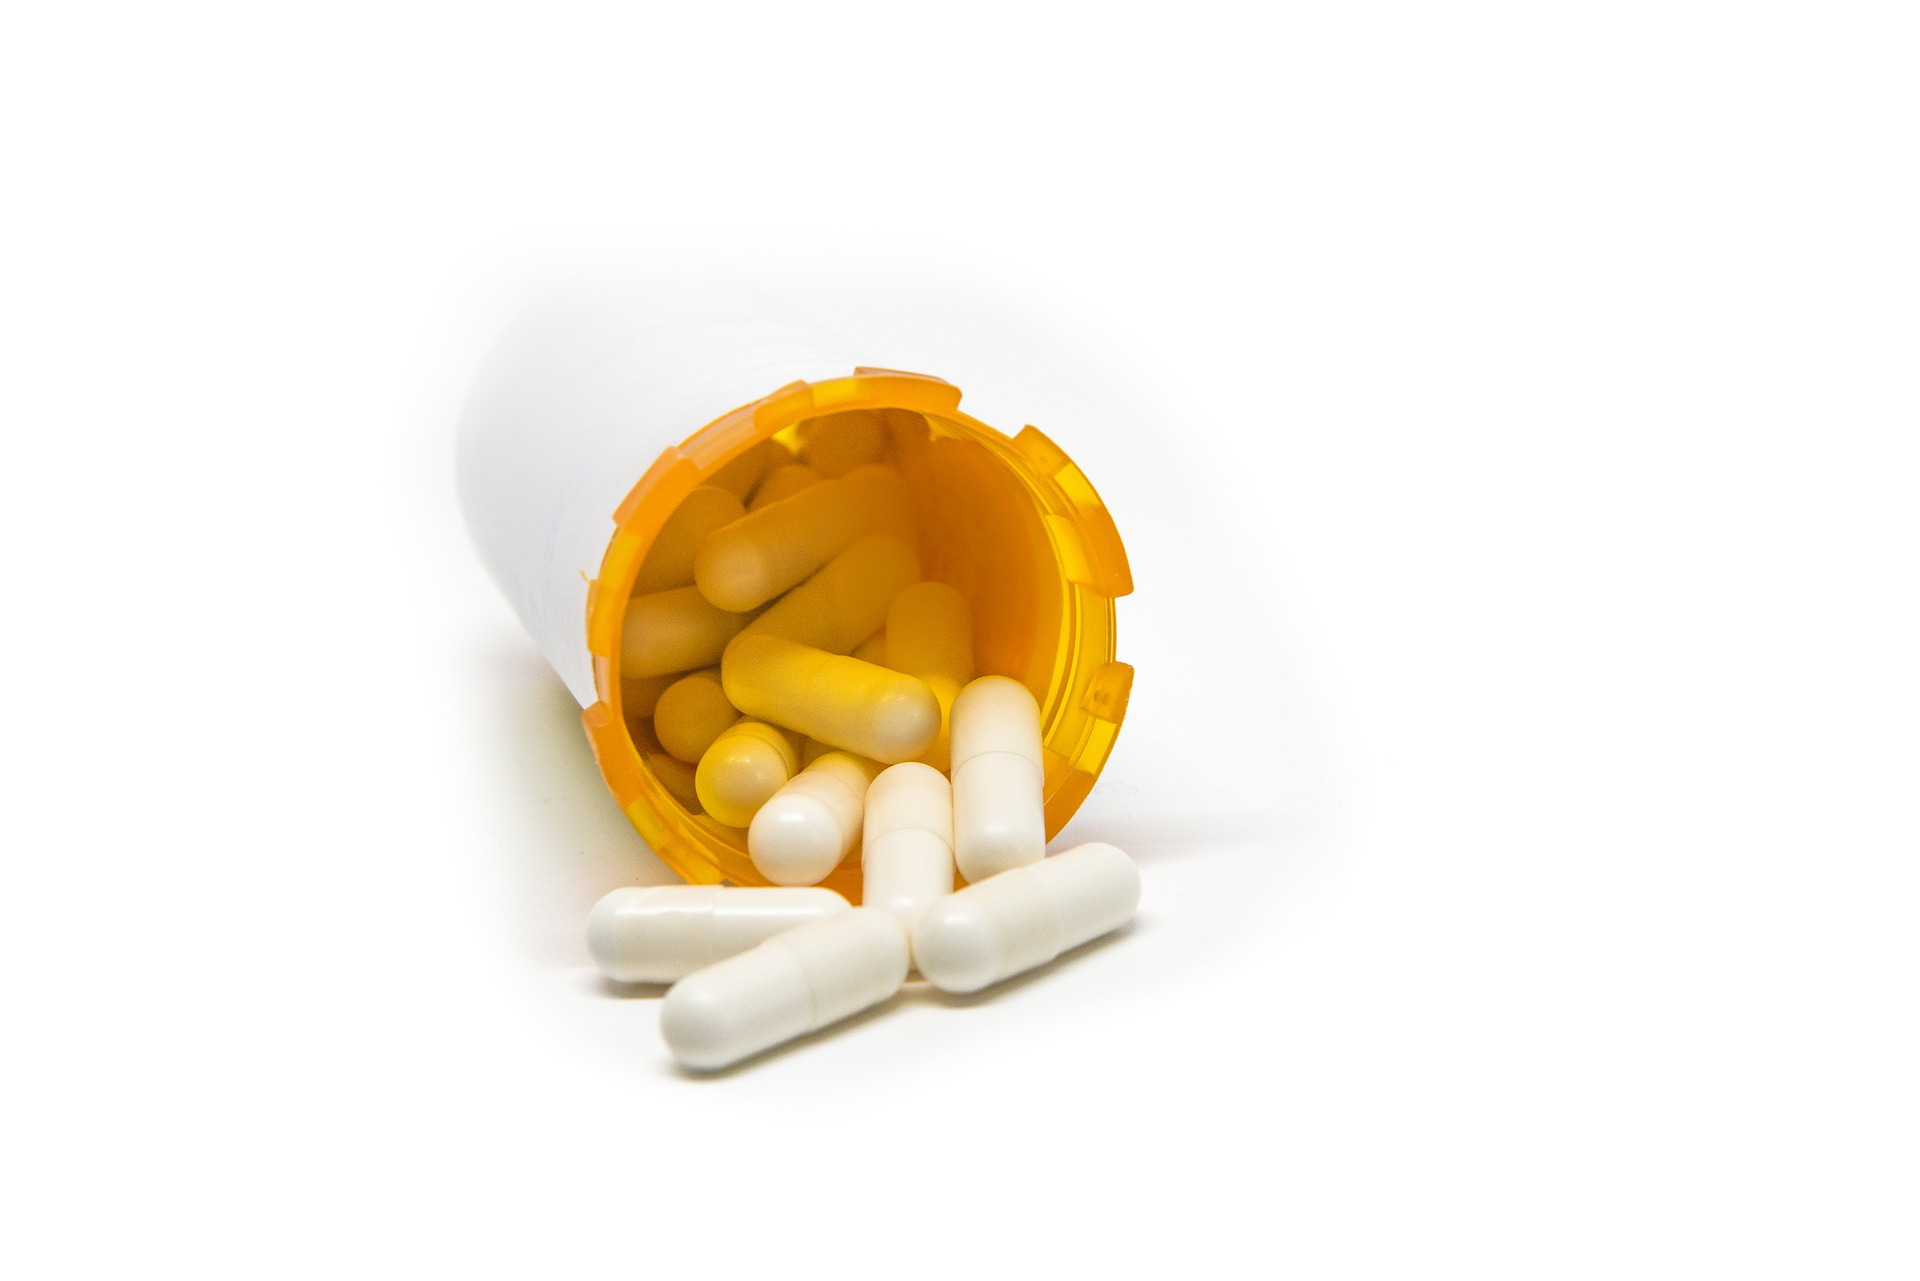 image of bottle of pills for blog about antibiotic alerts